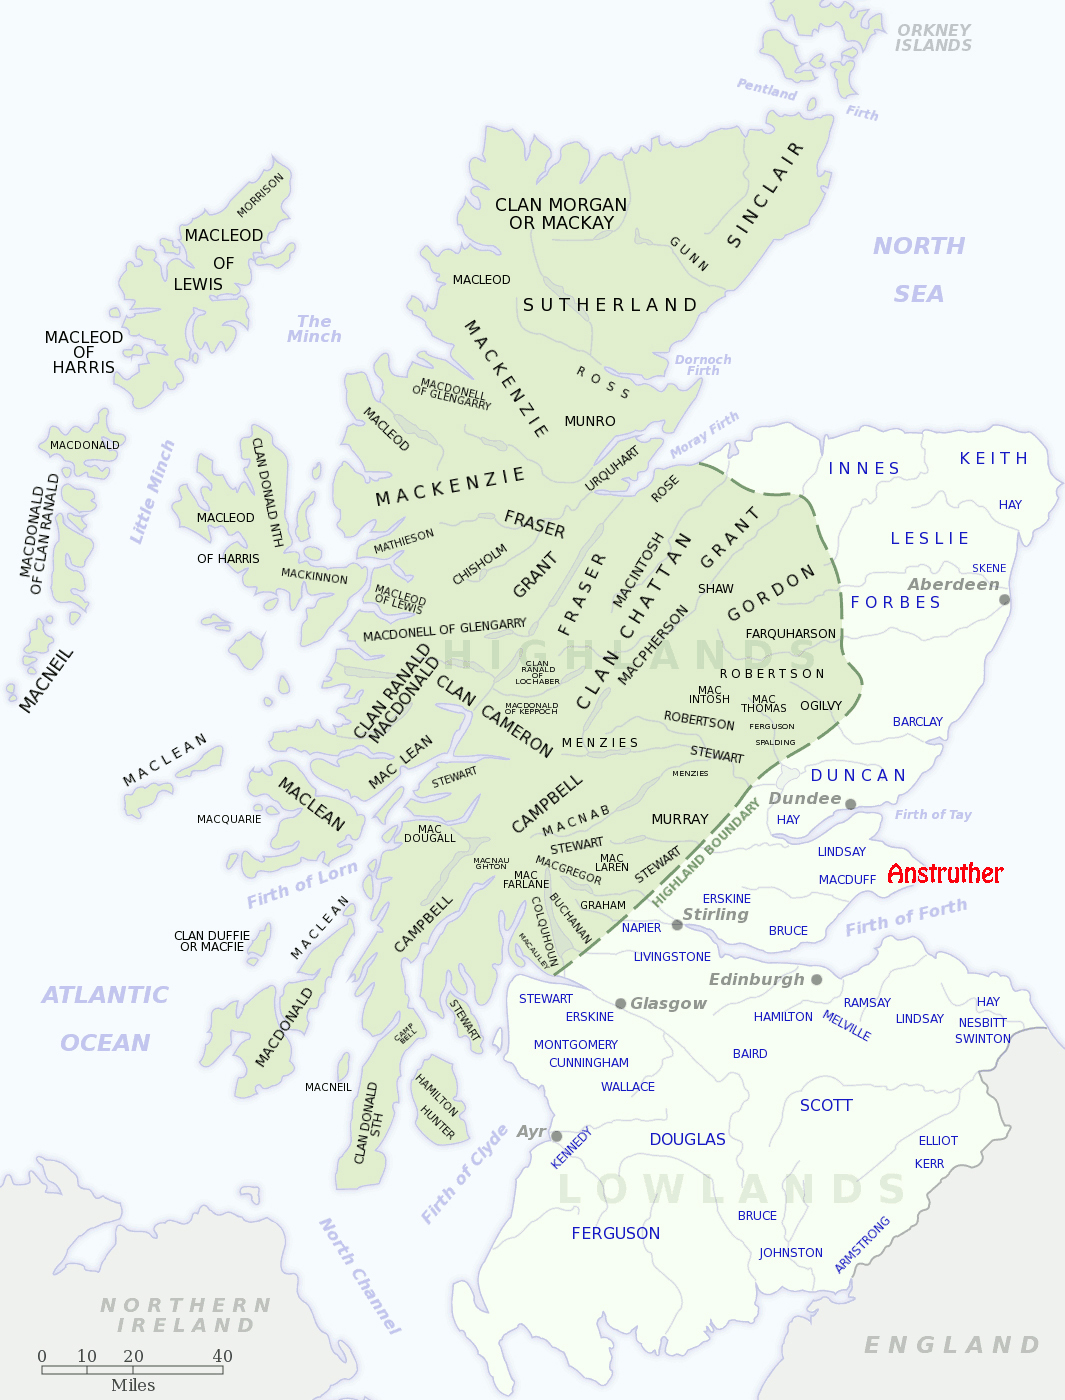 https://s3.amazonaws.com/photos.geni.com/p13/ac/70/68/cd/5344483b4e989881/anstruther_clan_map_original.jpg